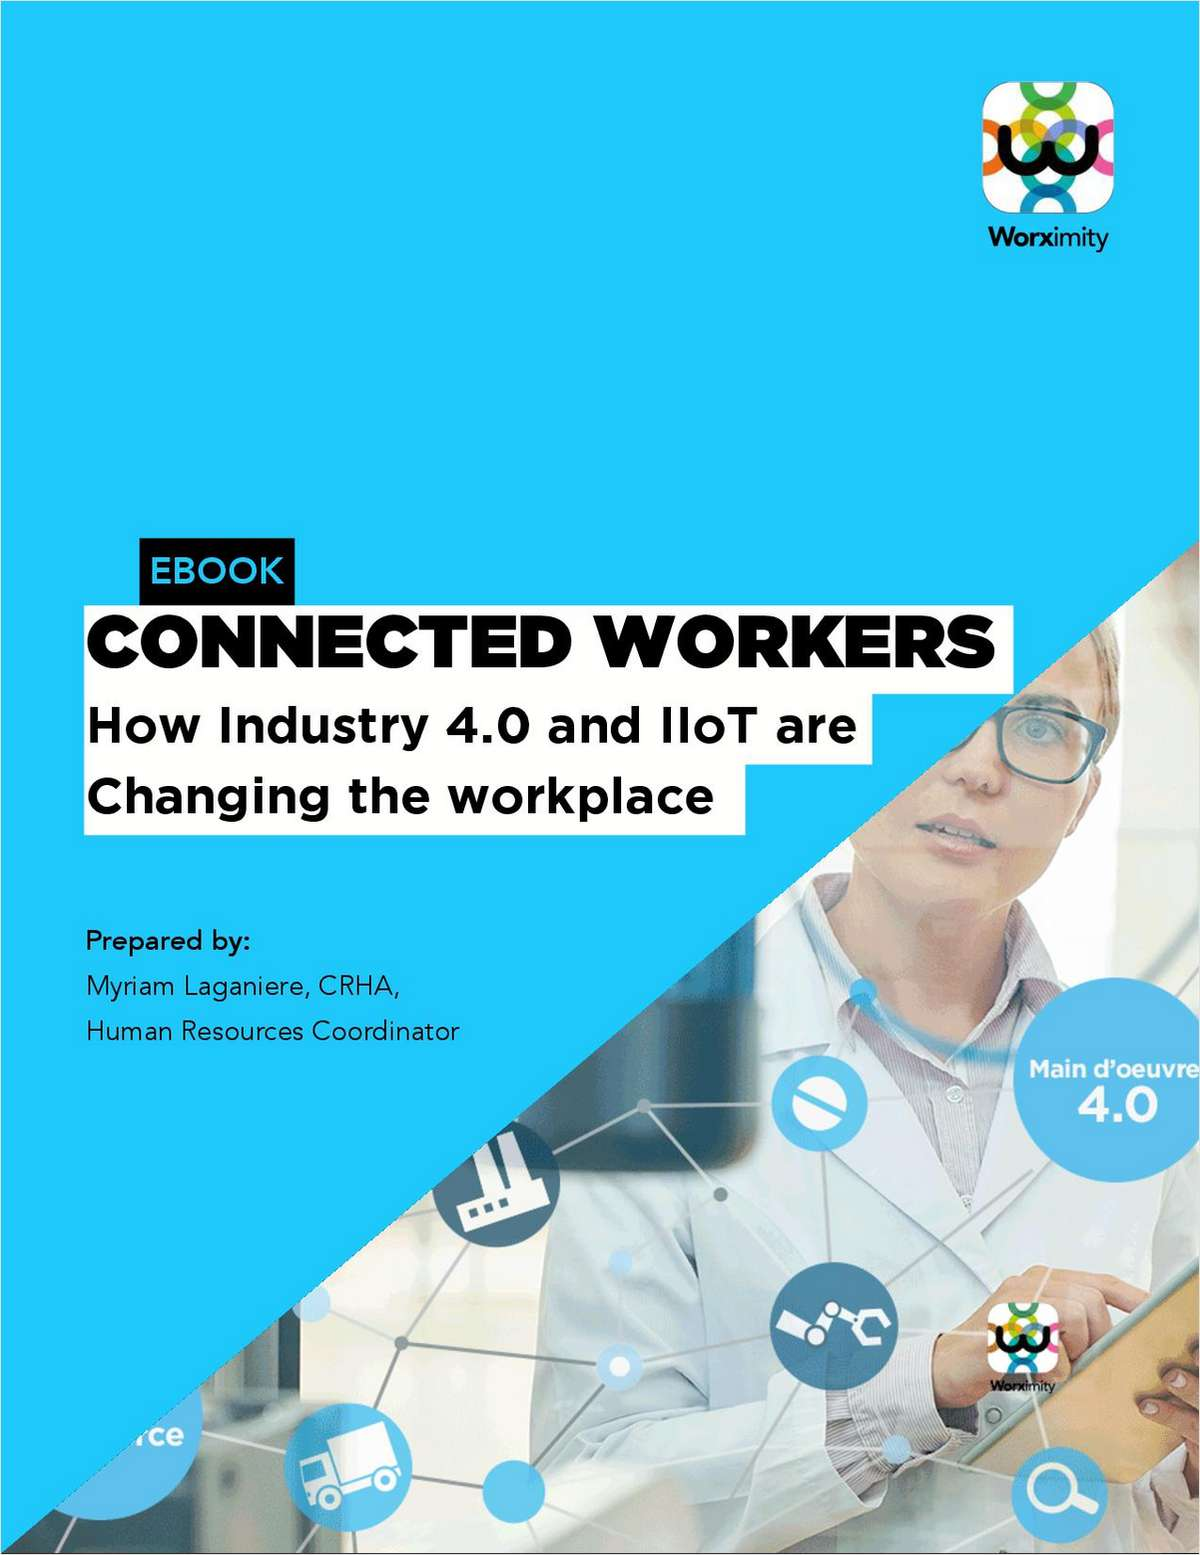 Connected Workers - How Industry 4.0 and IIoT are Changing the Workplace for Food Manufacturers